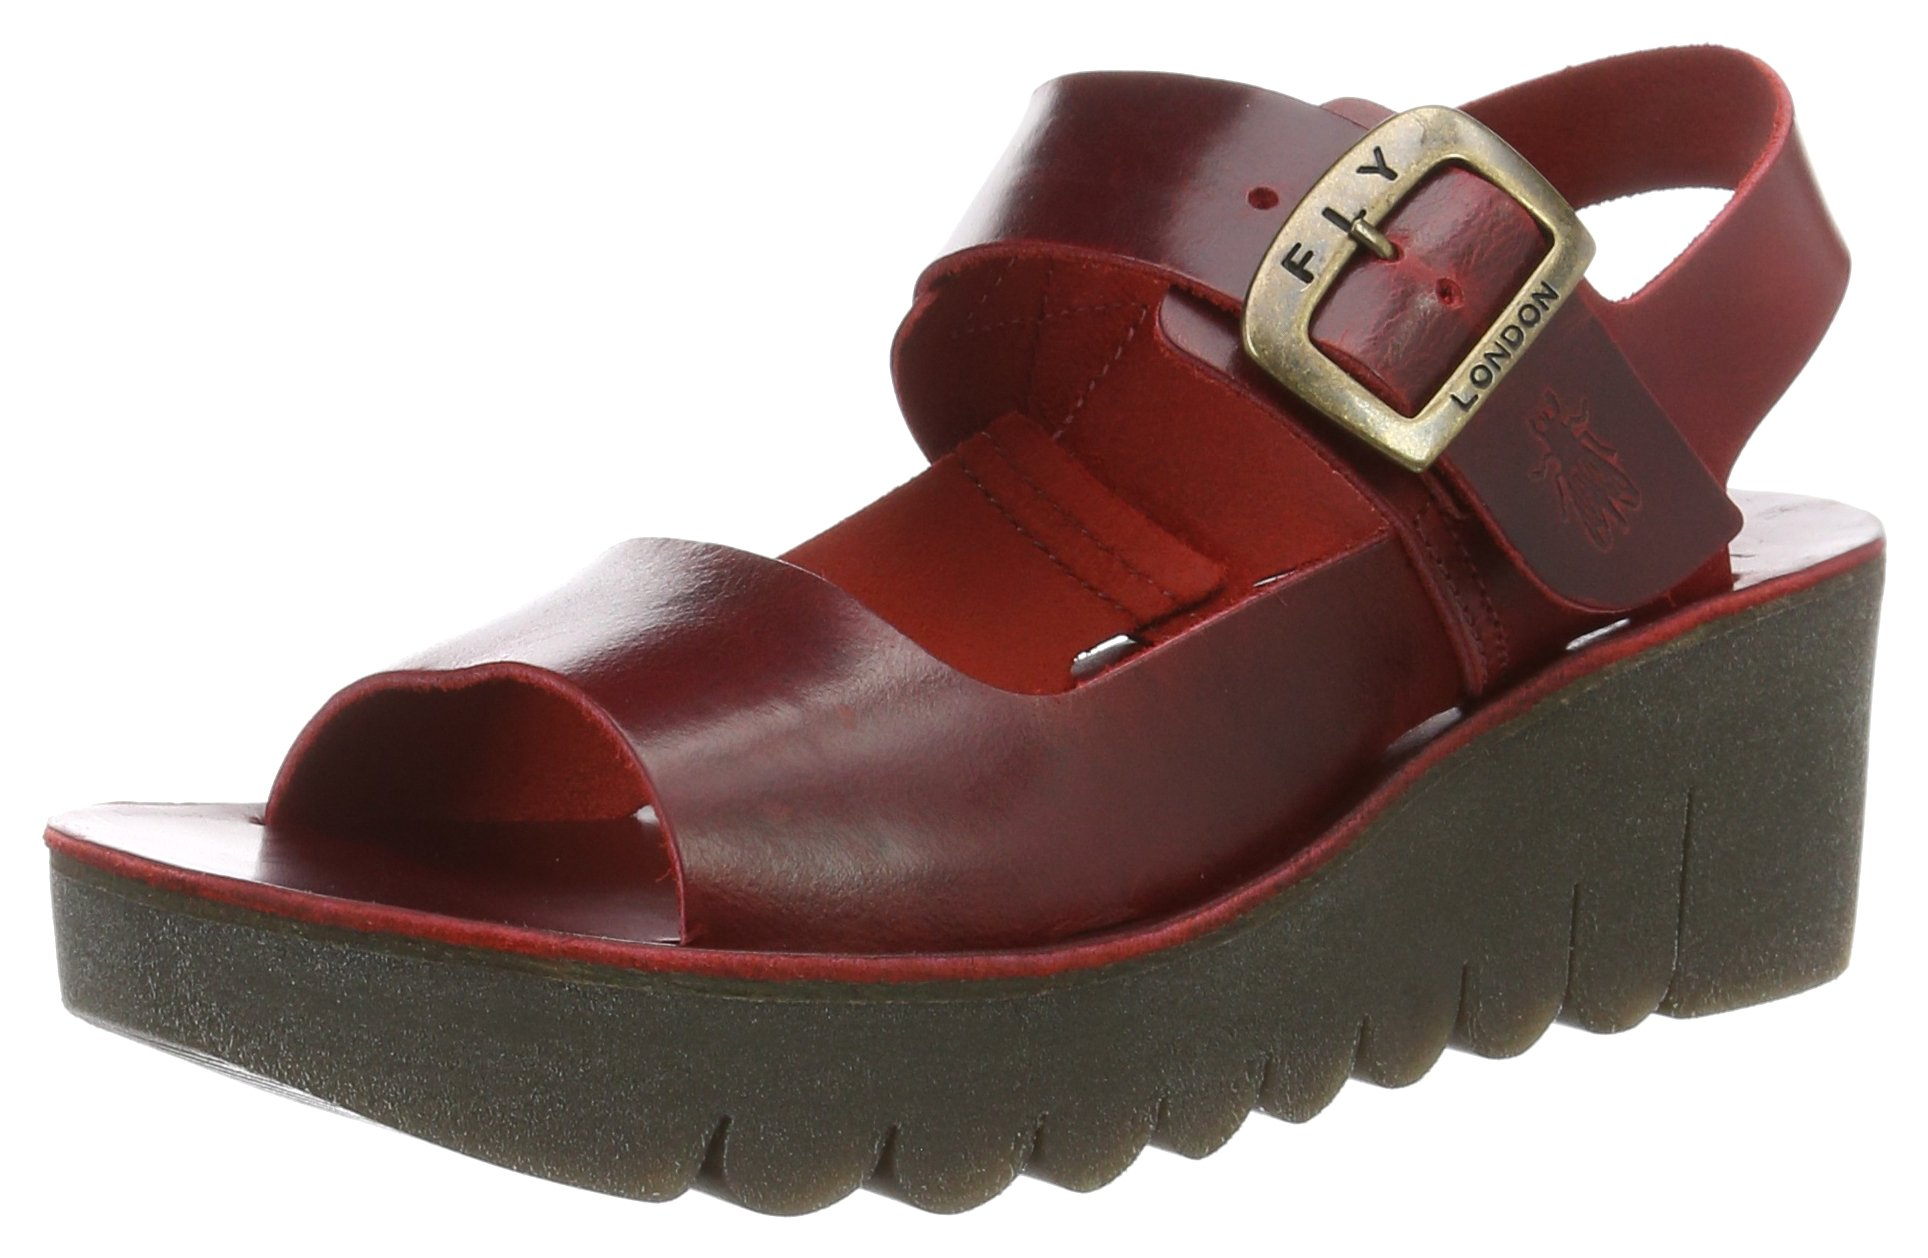 Womens Fly London Yail Bridle Holiday Open Toe Summer Leather Sandals - Red - 8